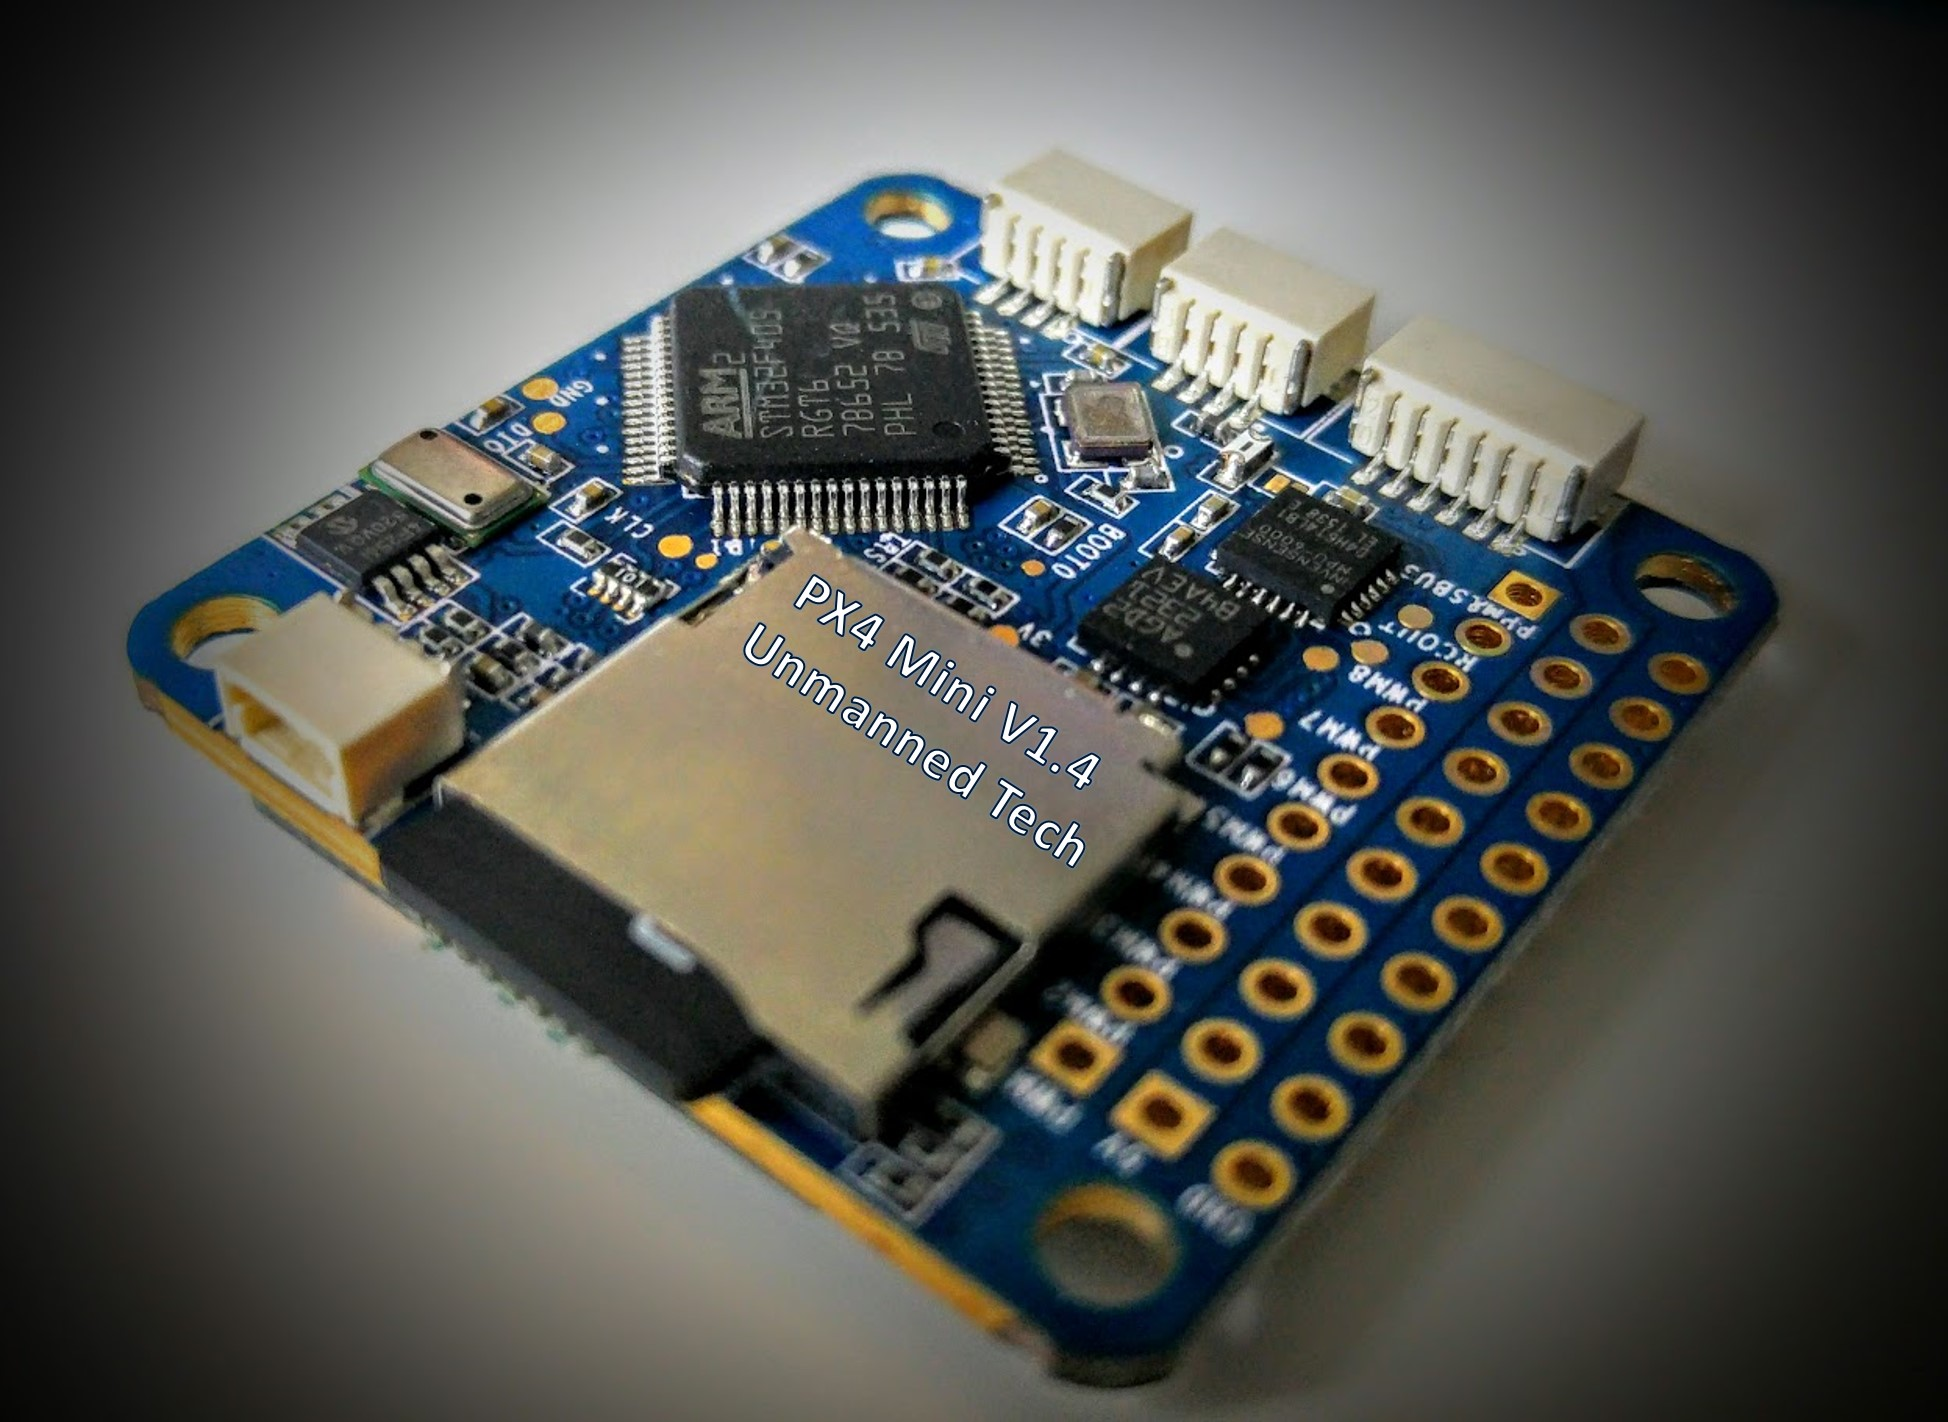 First Look At The Px4 Mini Autopilot Dronetrest Blog Connection Headers On Circuit Board You Would A Full Size Pixhawk But All Important Ports Are Available So Can Connect Suite Of Sensors And Peripherals To Your